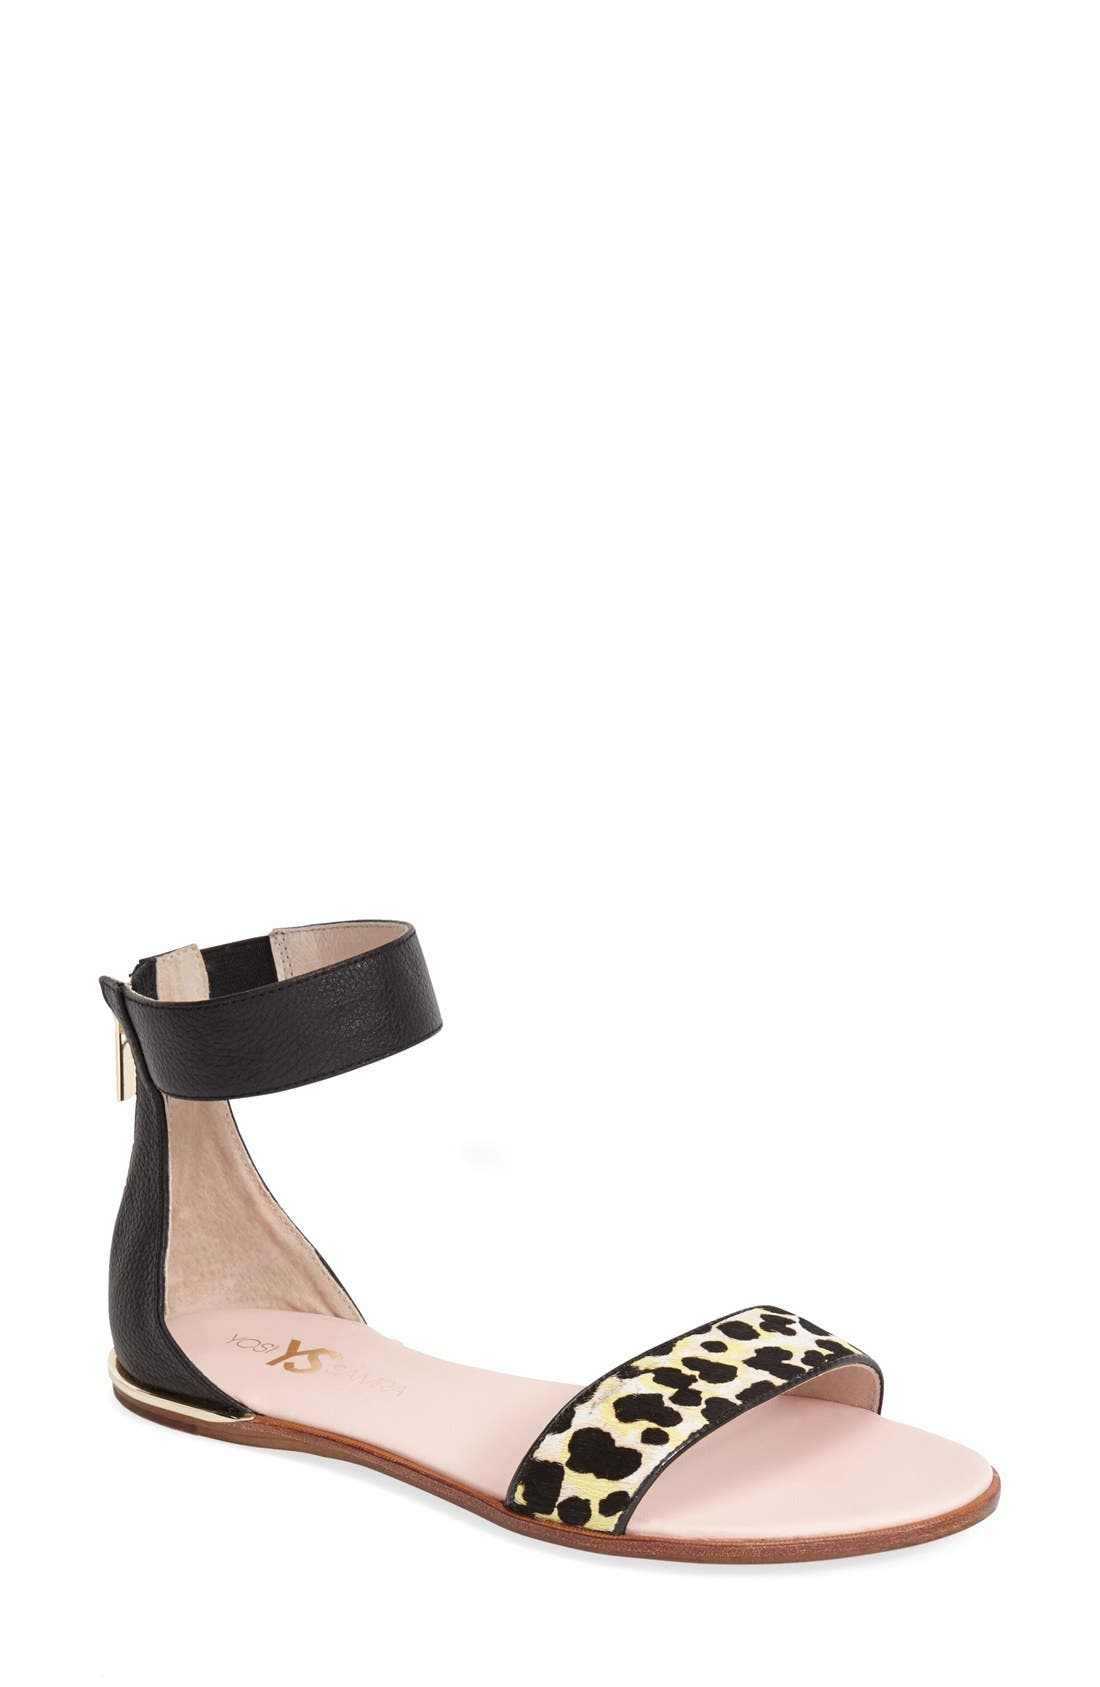 ,                             'Cambelle' Ankle Strap Sandal,                             Main thumbnail 39, color,                             275